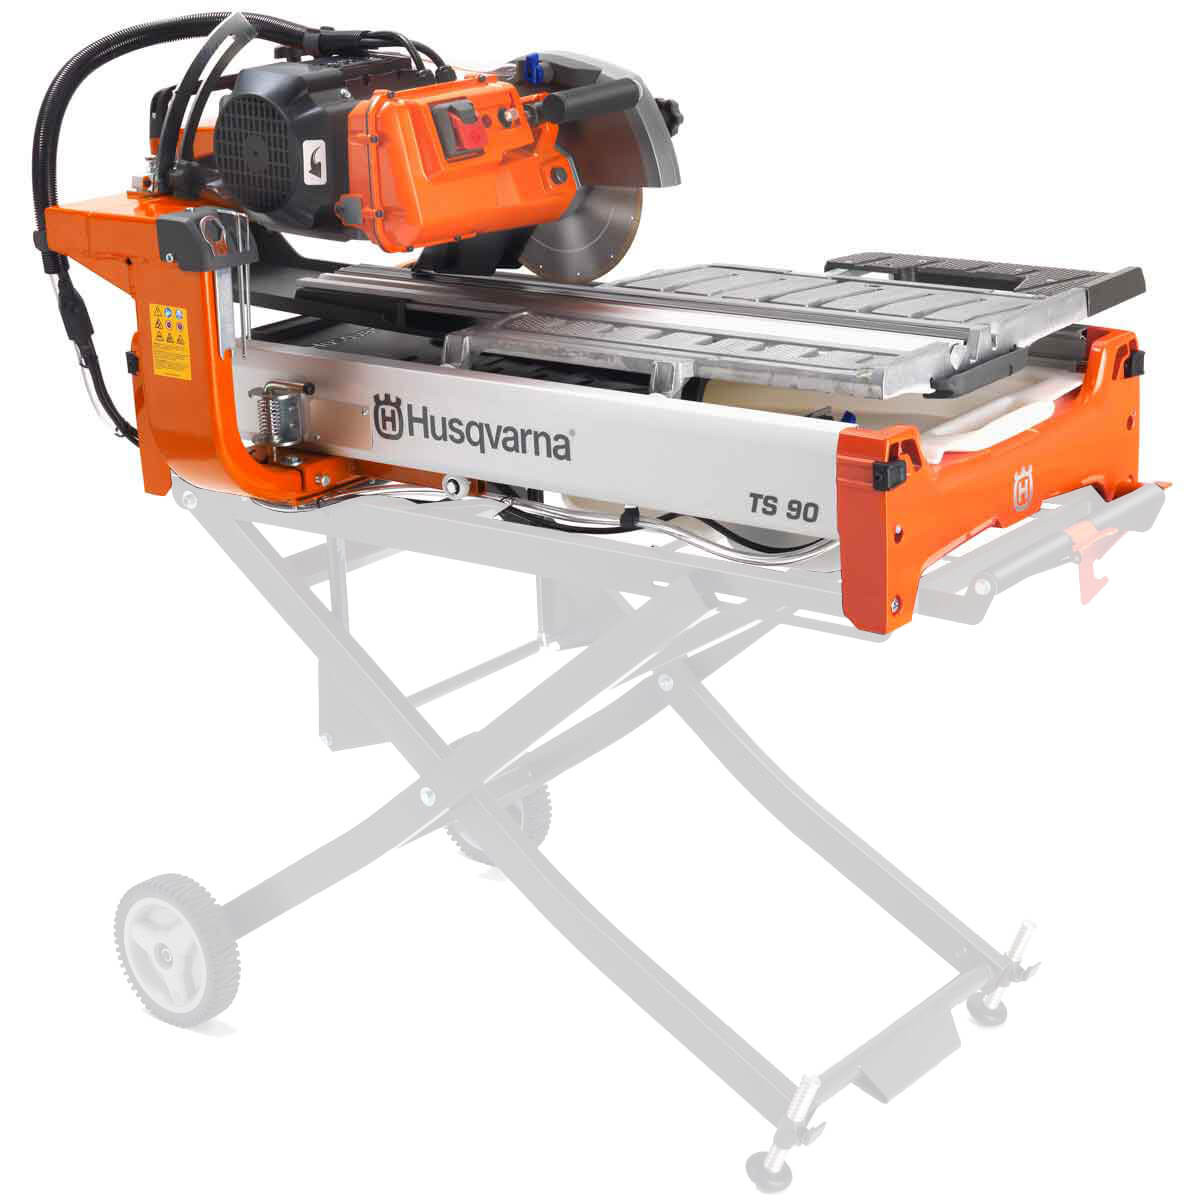 husqvarna ts90 tile saw 967285302